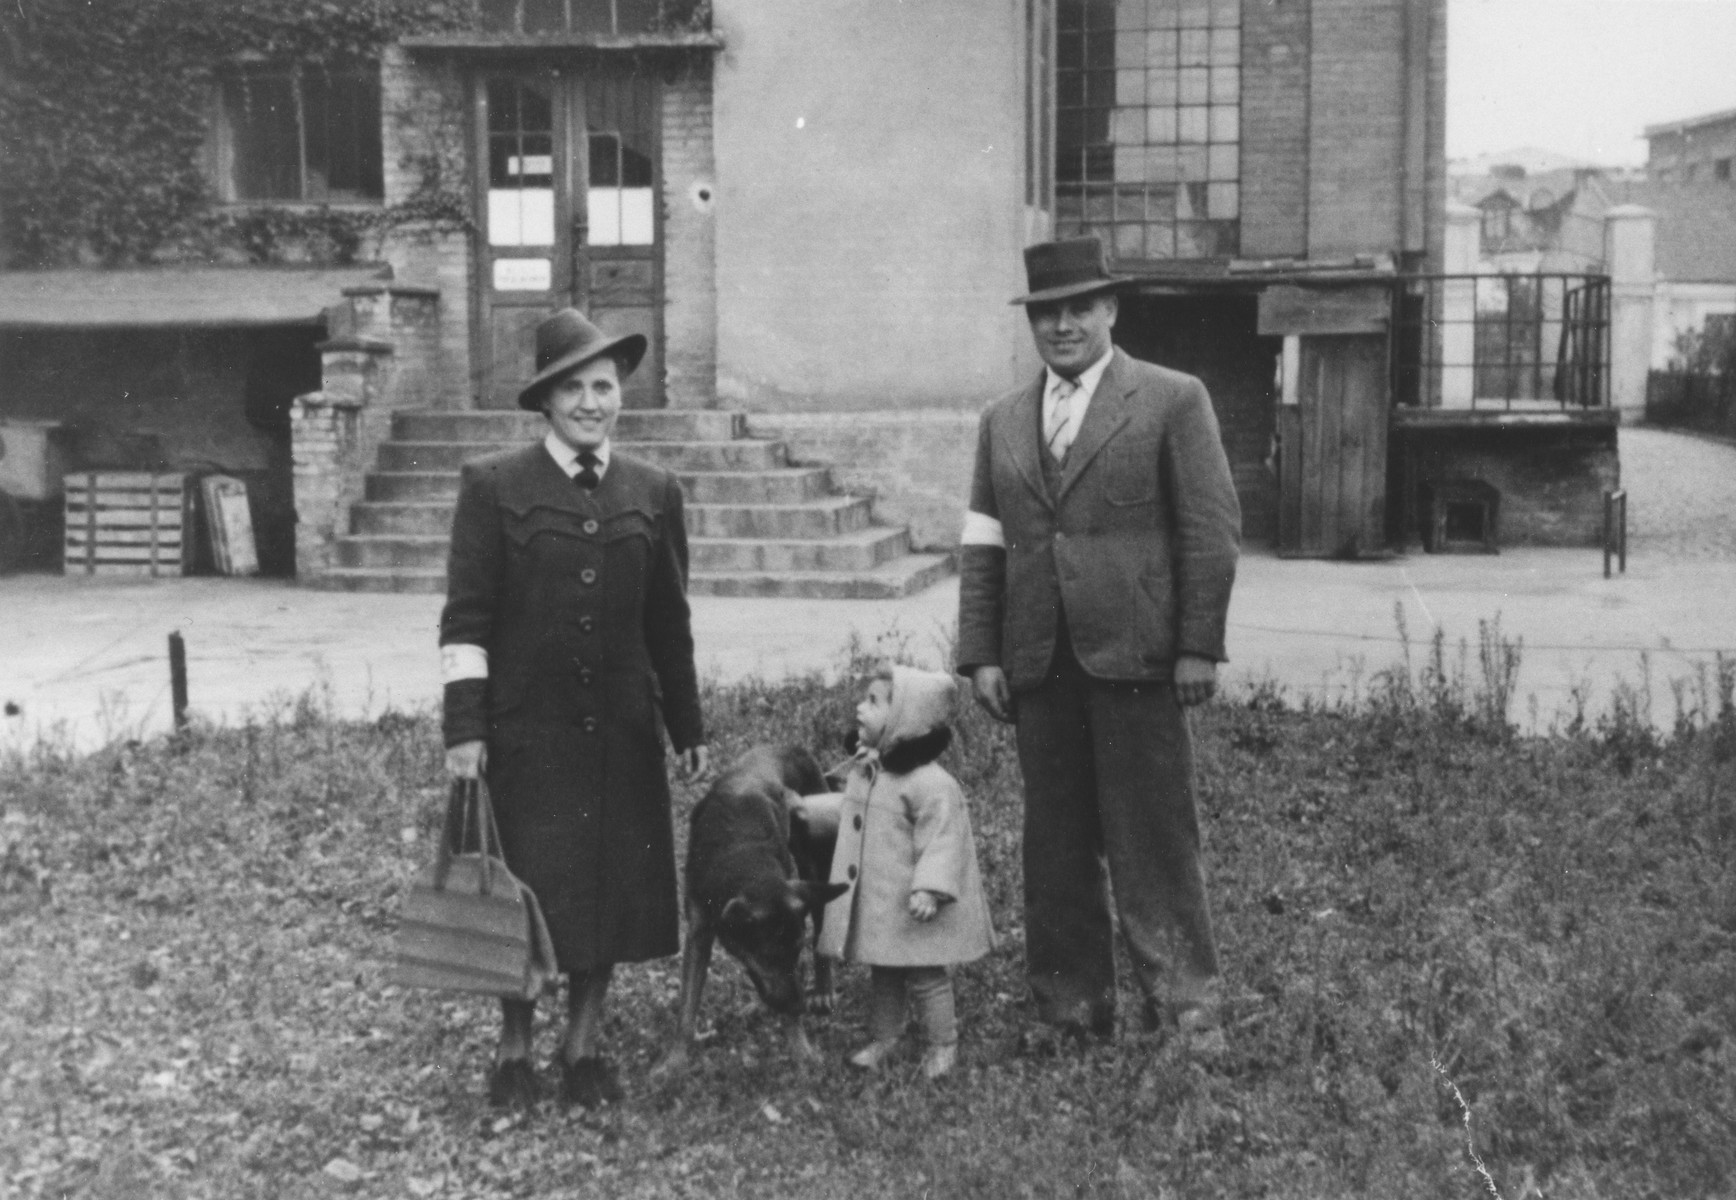 Basia Israel stands with her parents and a dog in the Krakow ghetto.